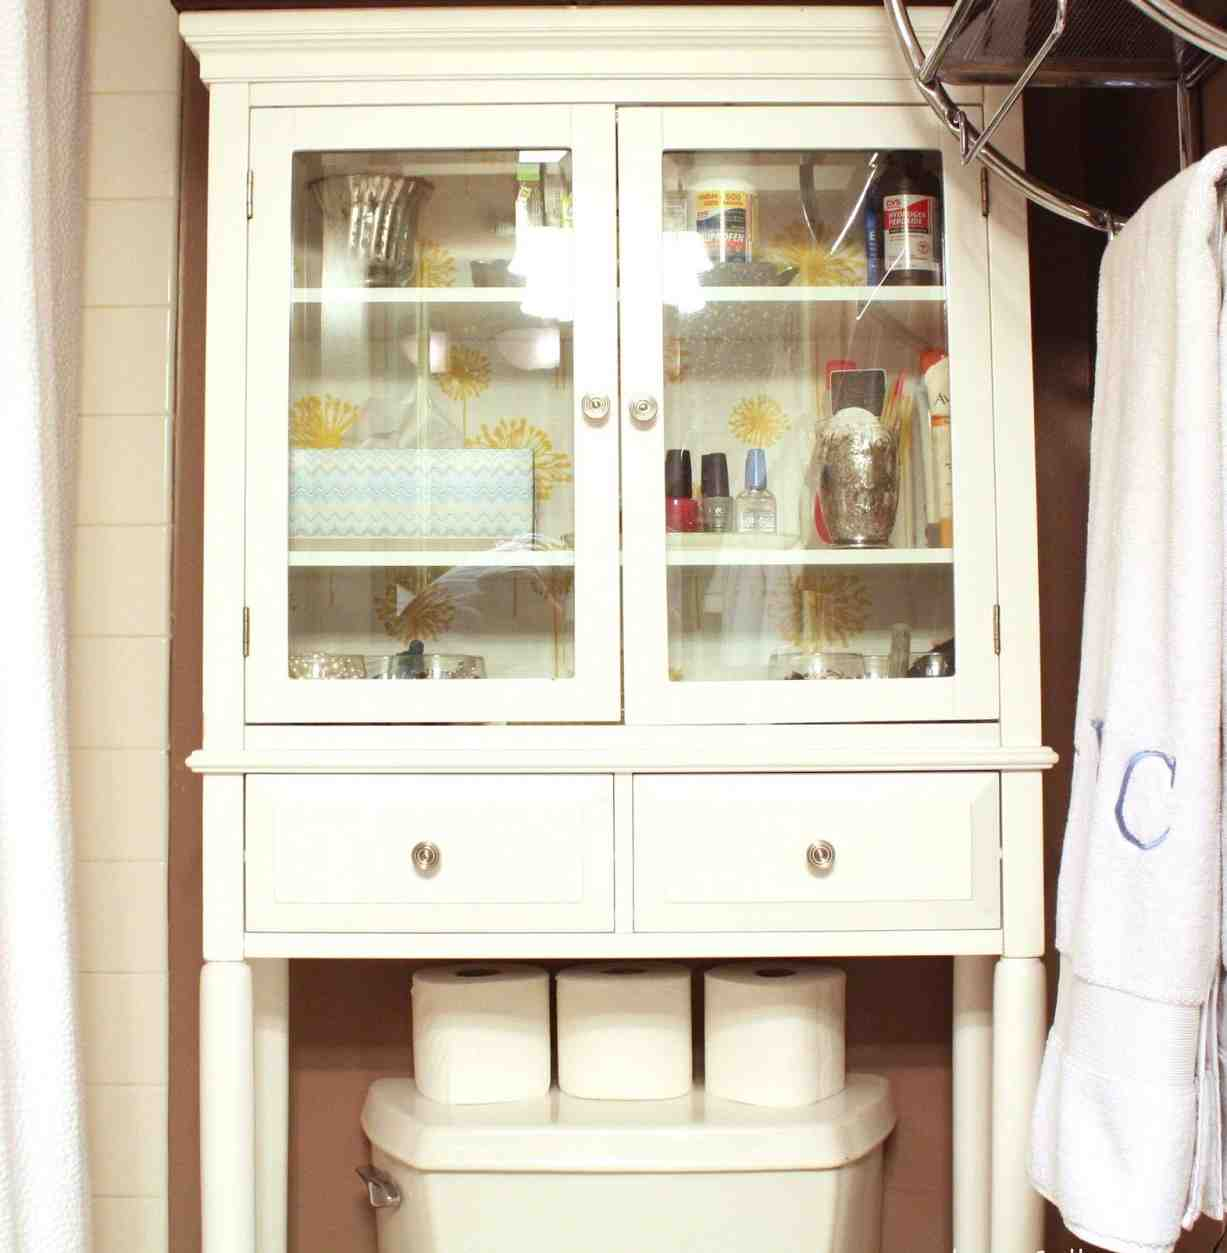 Bathroom Storage Cabinet Toilet 28 Images White Bathroom Cabinet Wood Space Saver Toilet